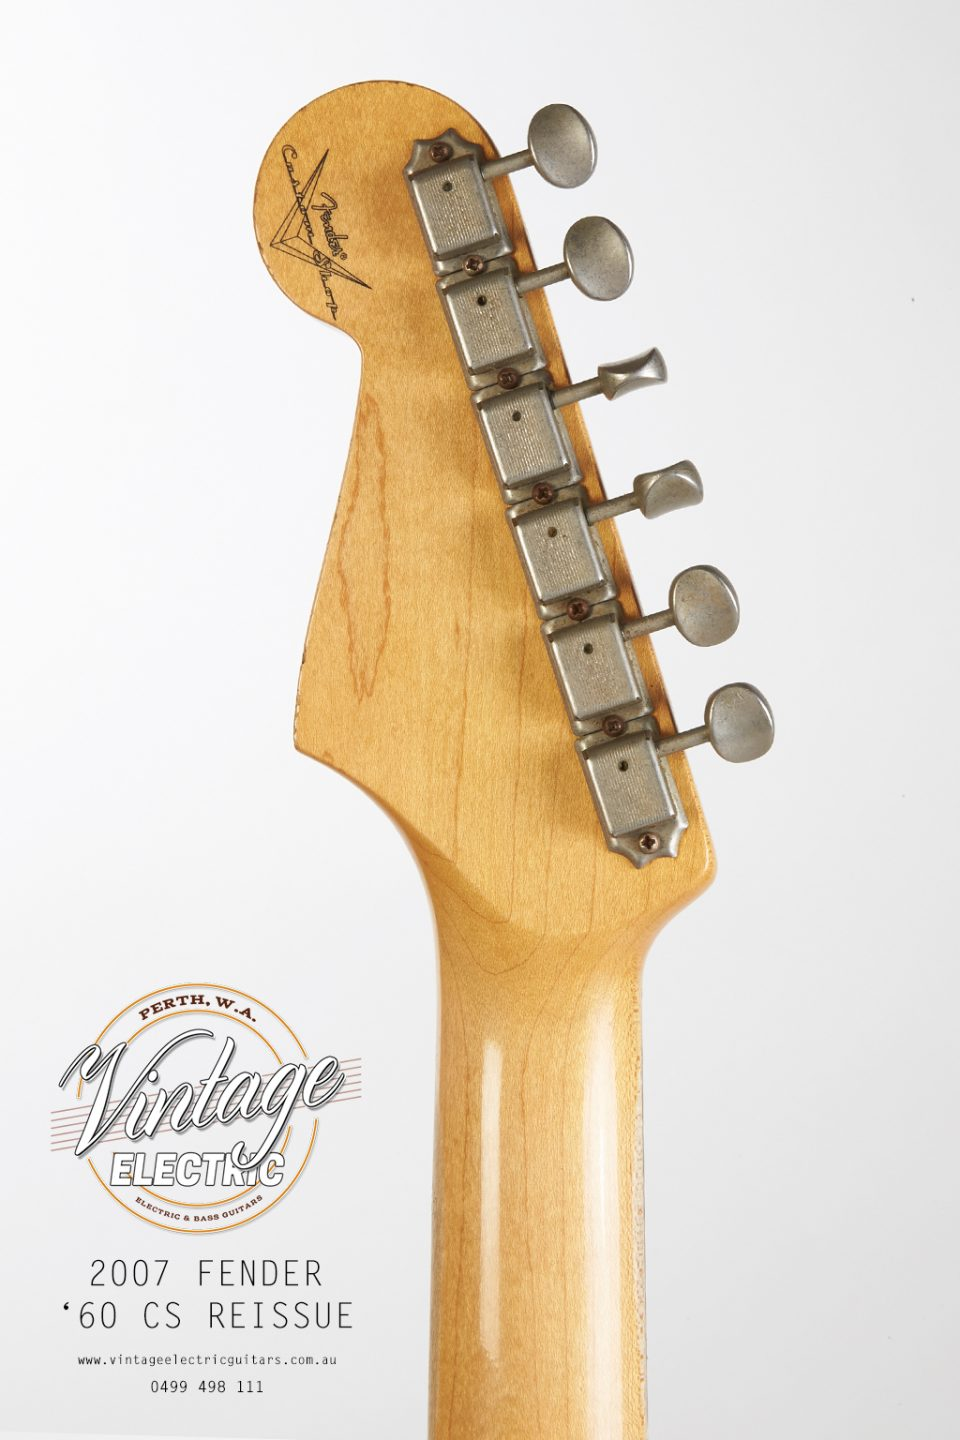 2007 Fender Stratocaster Back of Headstock